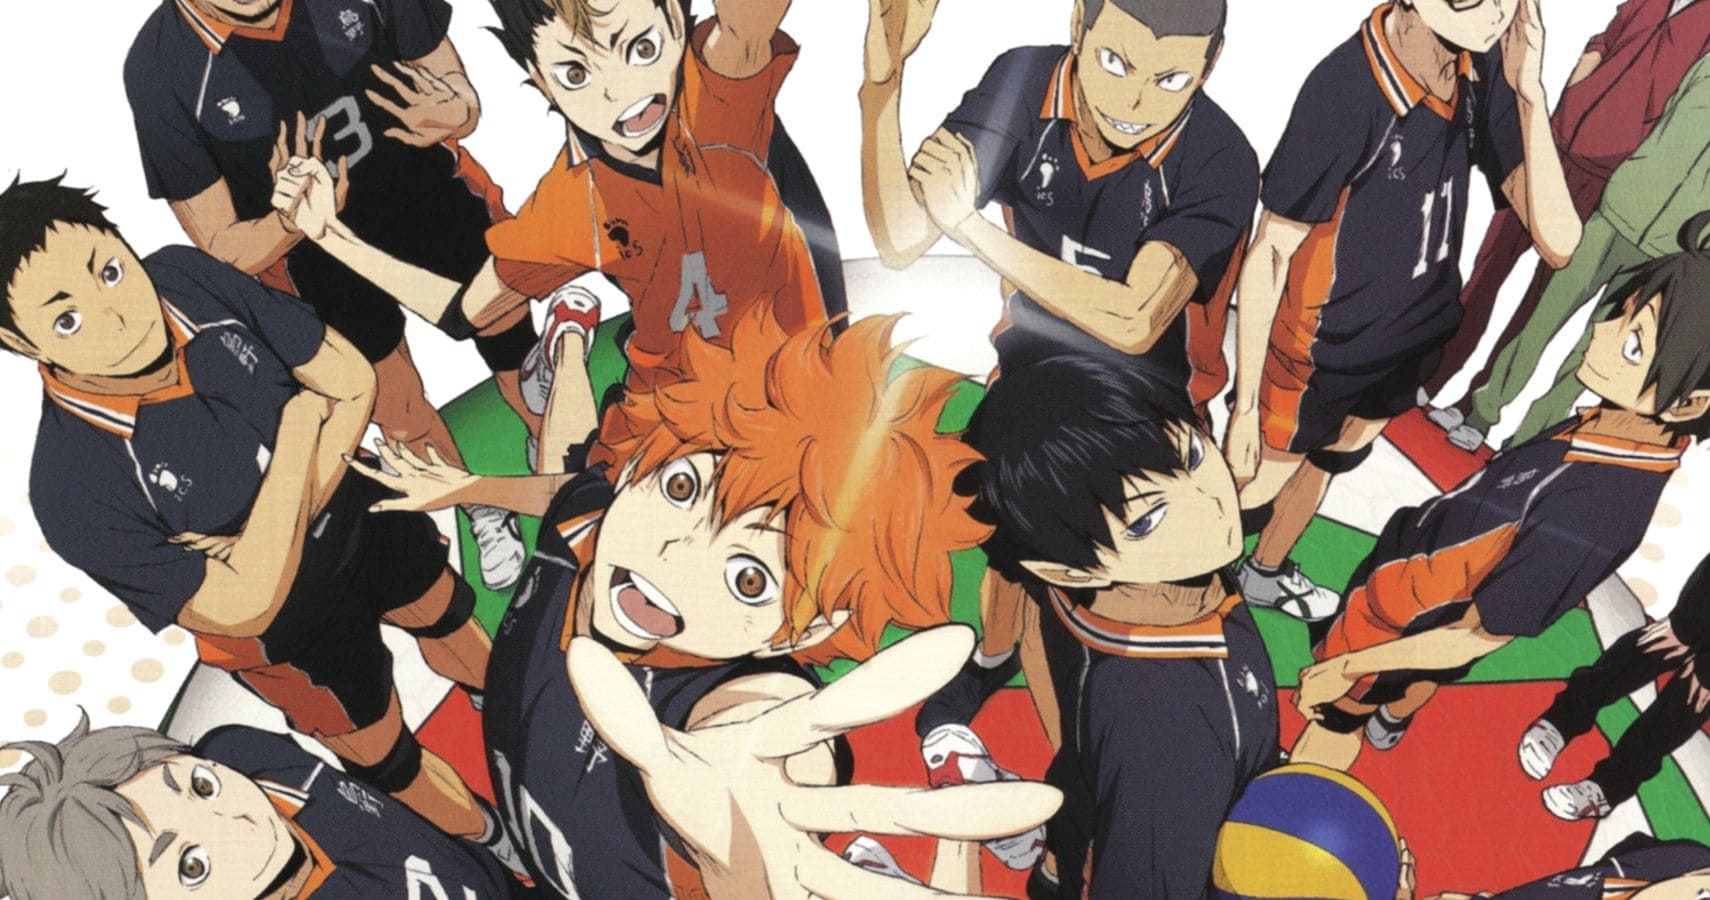 3 Best Sites To Read Haikyuu Manga Legally Online You can read the latest and hottest haikyuu!! read haikyuu manga legally online